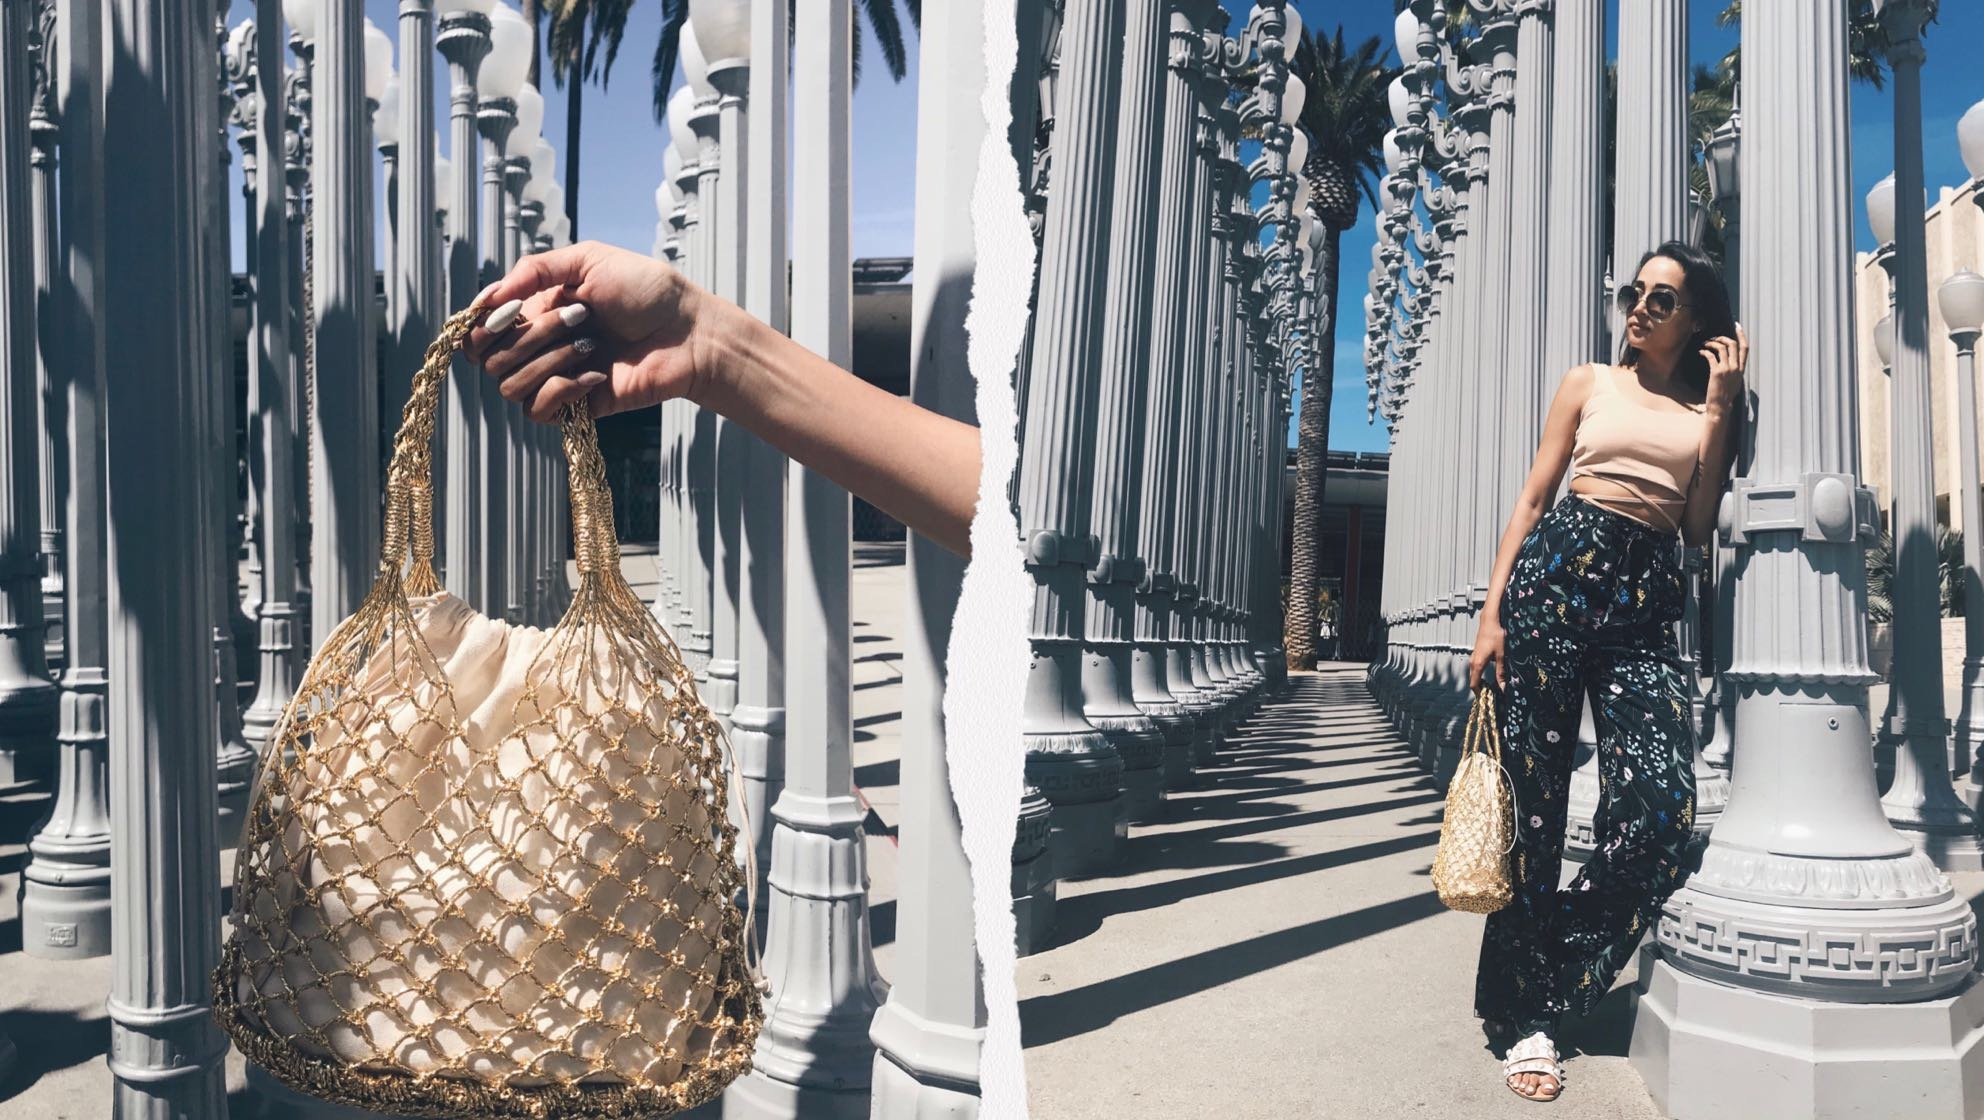 WOVEN, WICKER, STRAW – ACCESSORY TREND OBSSESSED | FASHION